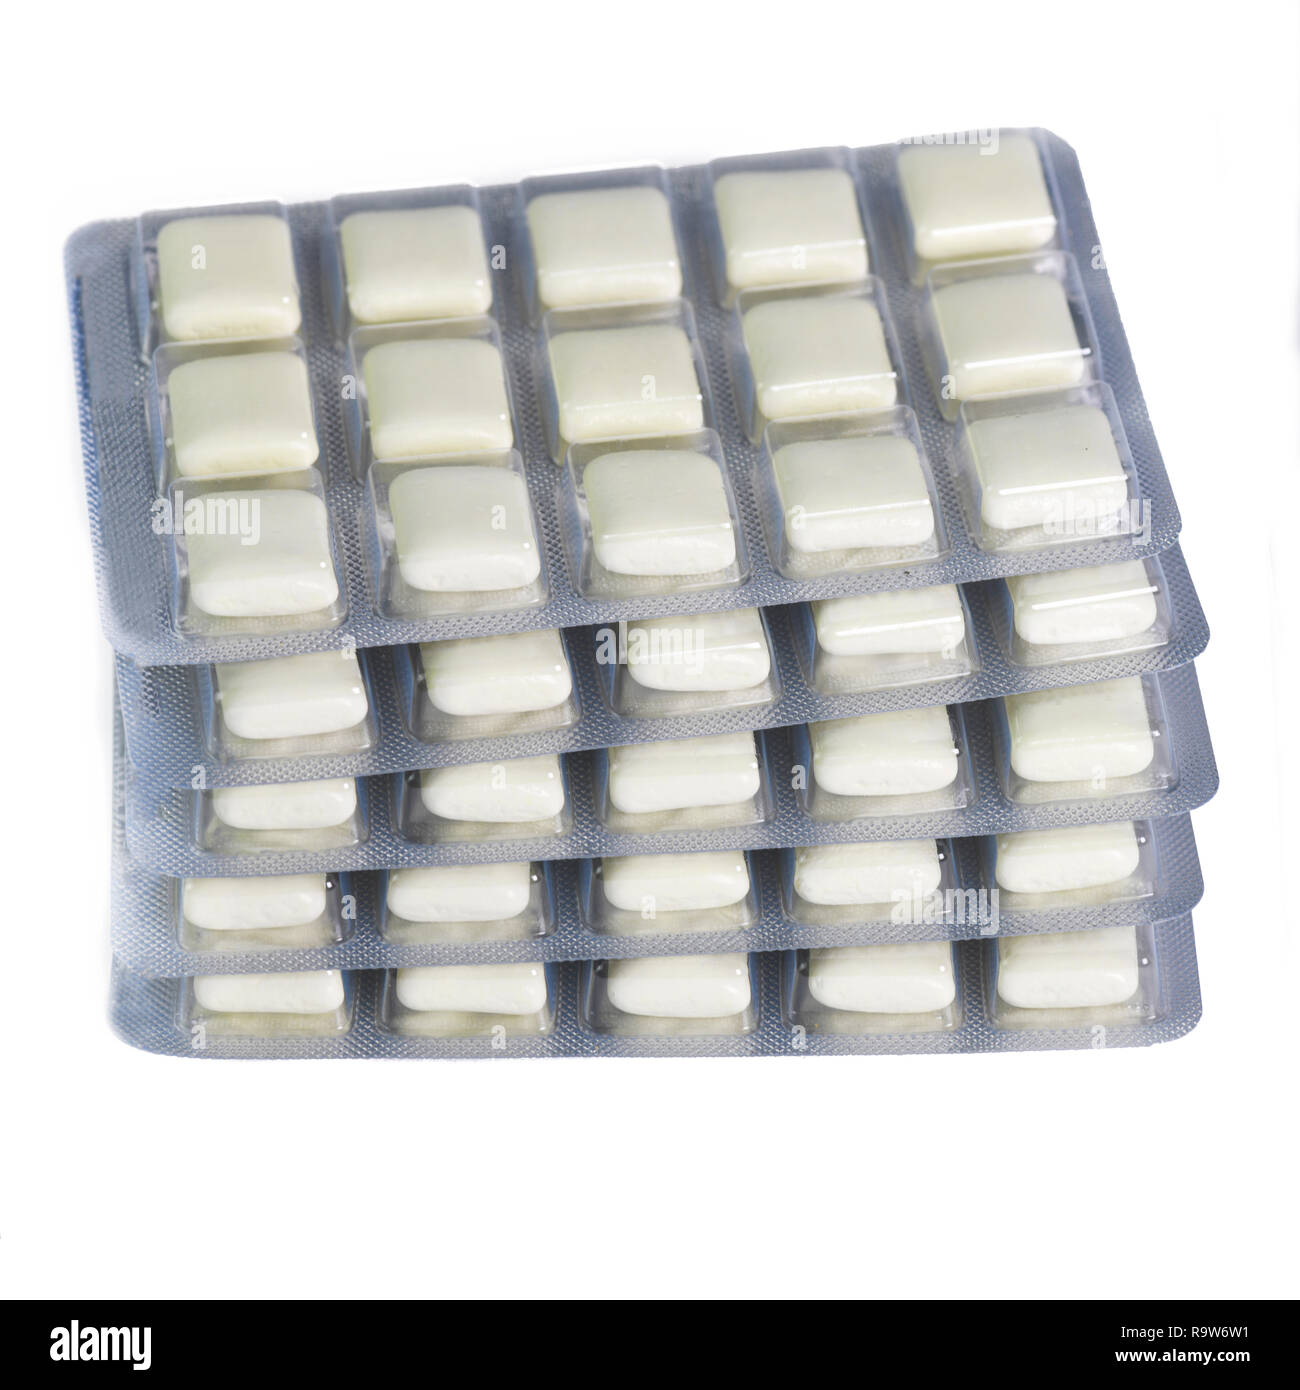 stack of nicotine gum for giving up smoking for health reasons  isolated on a white background - Stock Image